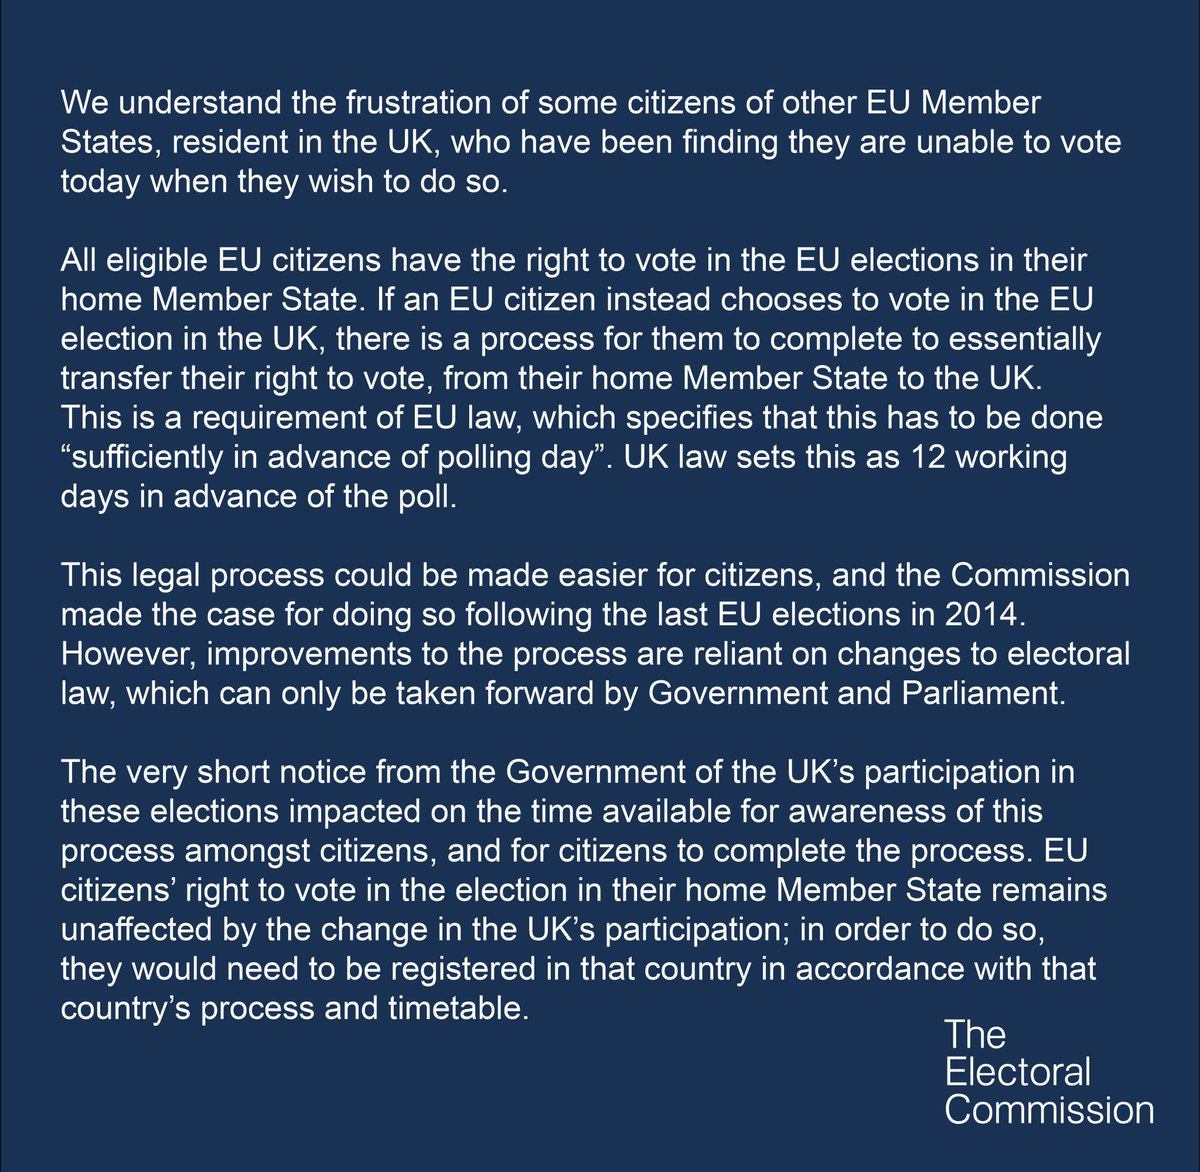 We're aware that some EU citizens, resident in the UK, have been unable to vote today and understand the frustration this has caused. Here's our statement: https://www.electoralcommission.org.uk/i-am-a/journalist/electoral-commission-media-centre/to-keep/electoral-commission-statement-regarding-eu-citizens-being-unable-to-vote-in-the-european-parliament-elections…